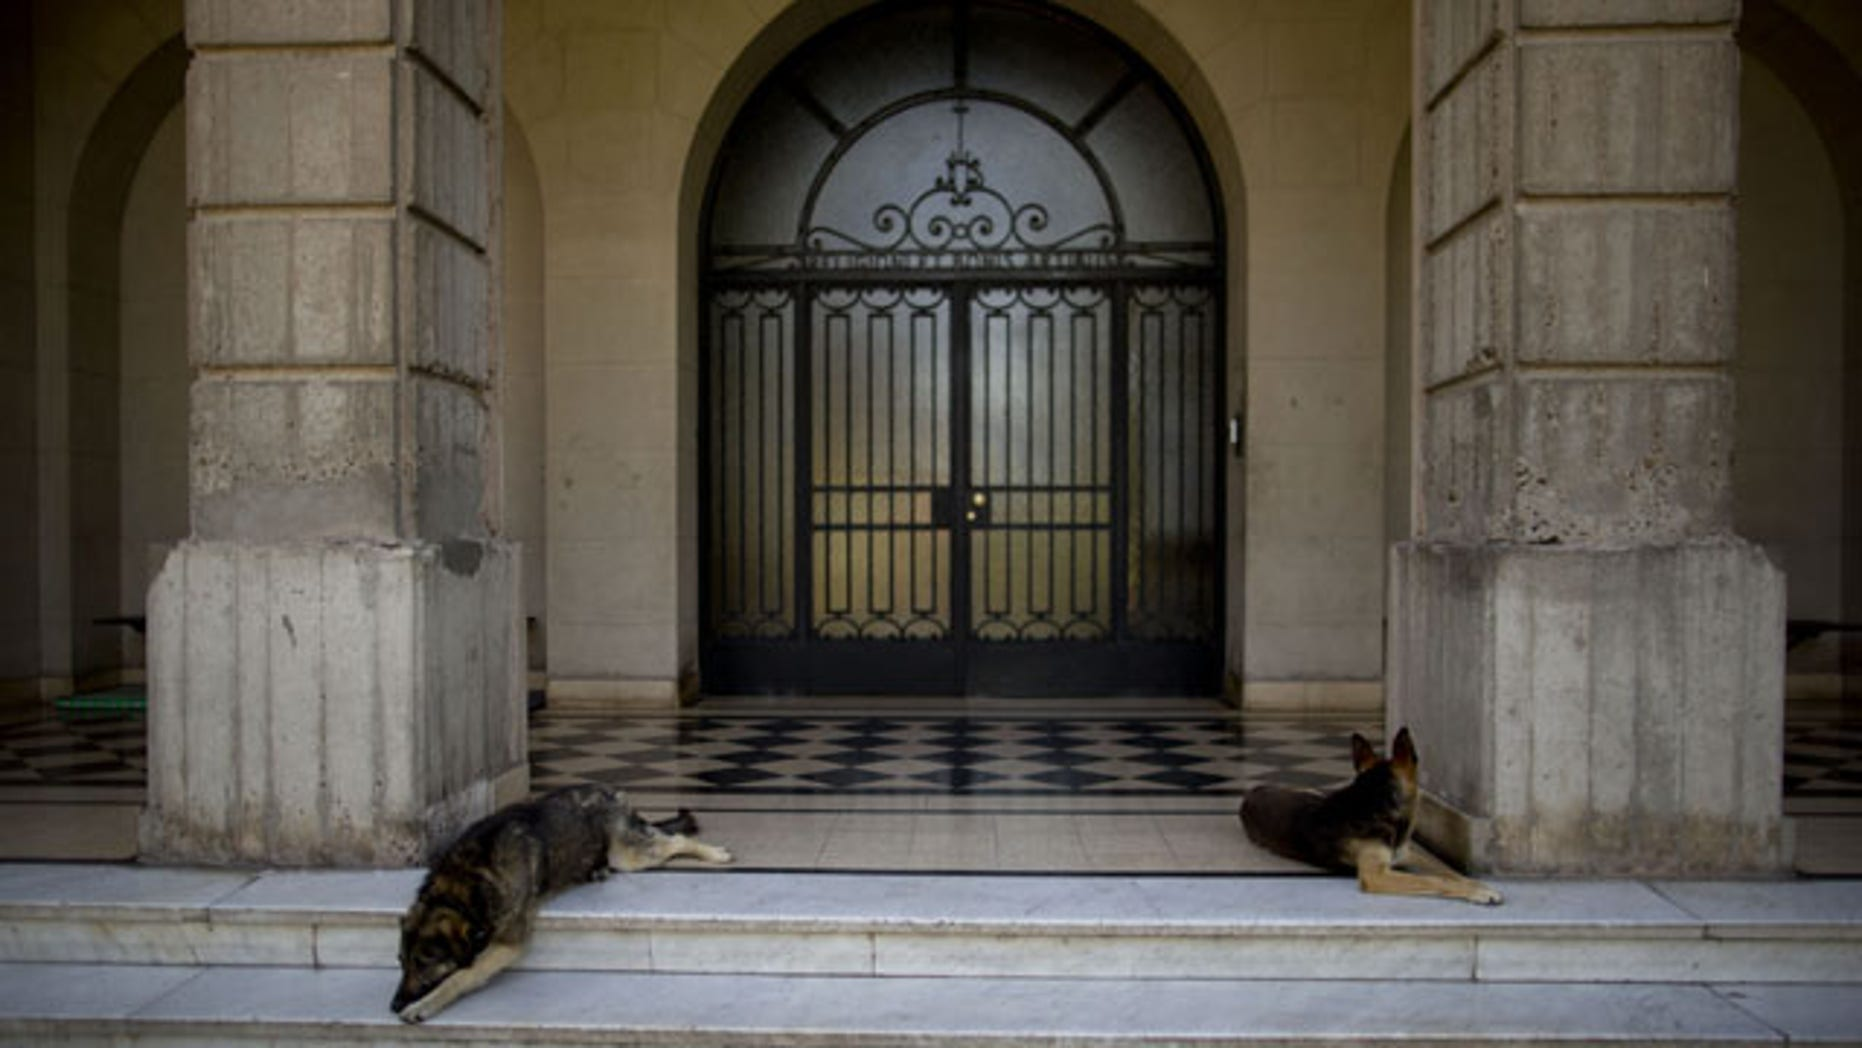 November 29, 2013: Two dogs lie on the entrance of the Colegio Maximo in Buenos Aires, Argentina. Jorge Mario Bergoglio, now Pope Francis, studied philosophy and theology and became a priest at this school. He also lived there in different periods of his life, first when he served as Provincial of the Jesuits in Argentina from 1975 to 1979 and later, when he became Rector between 1979 and 1986. (AP)